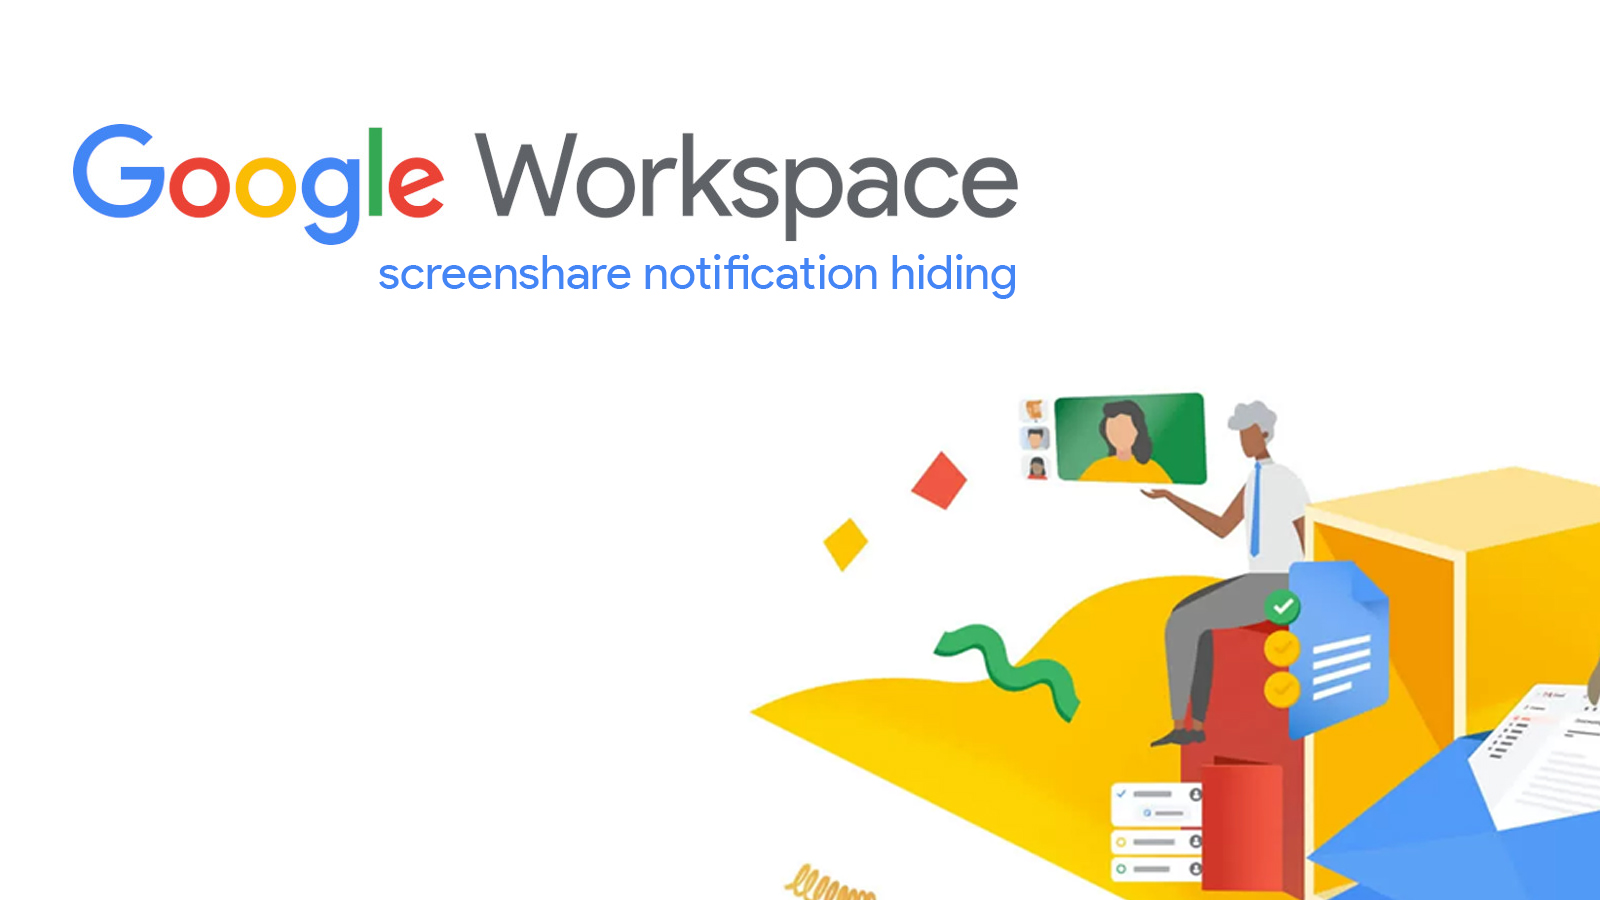 Chrome is finally rolling out the ability to hide your notifications while screen sharing